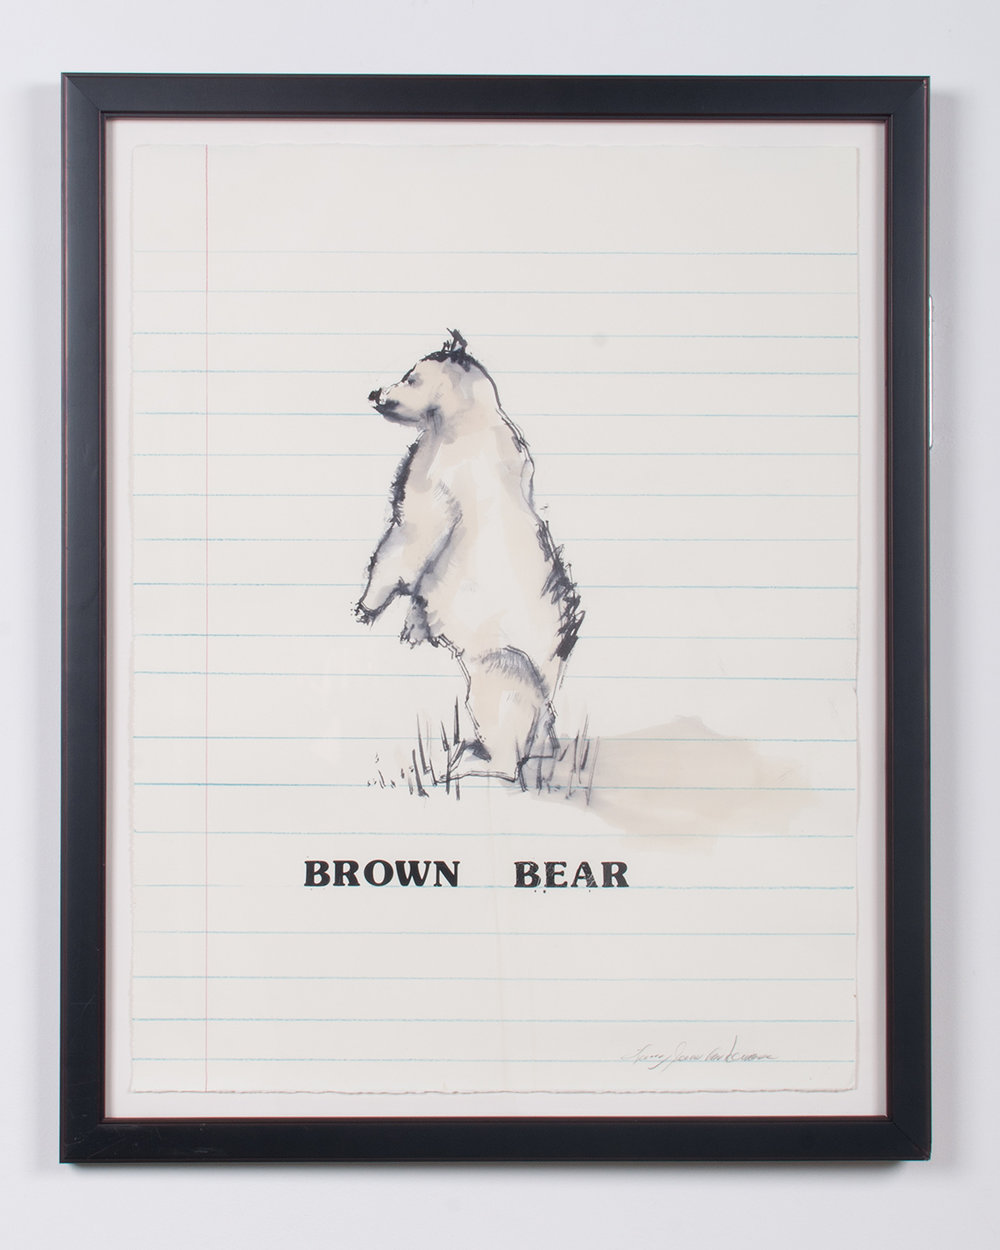 Brown Bear ink, watercolor, colored pencil, vinyl 30.25 x 24 LJA 154G